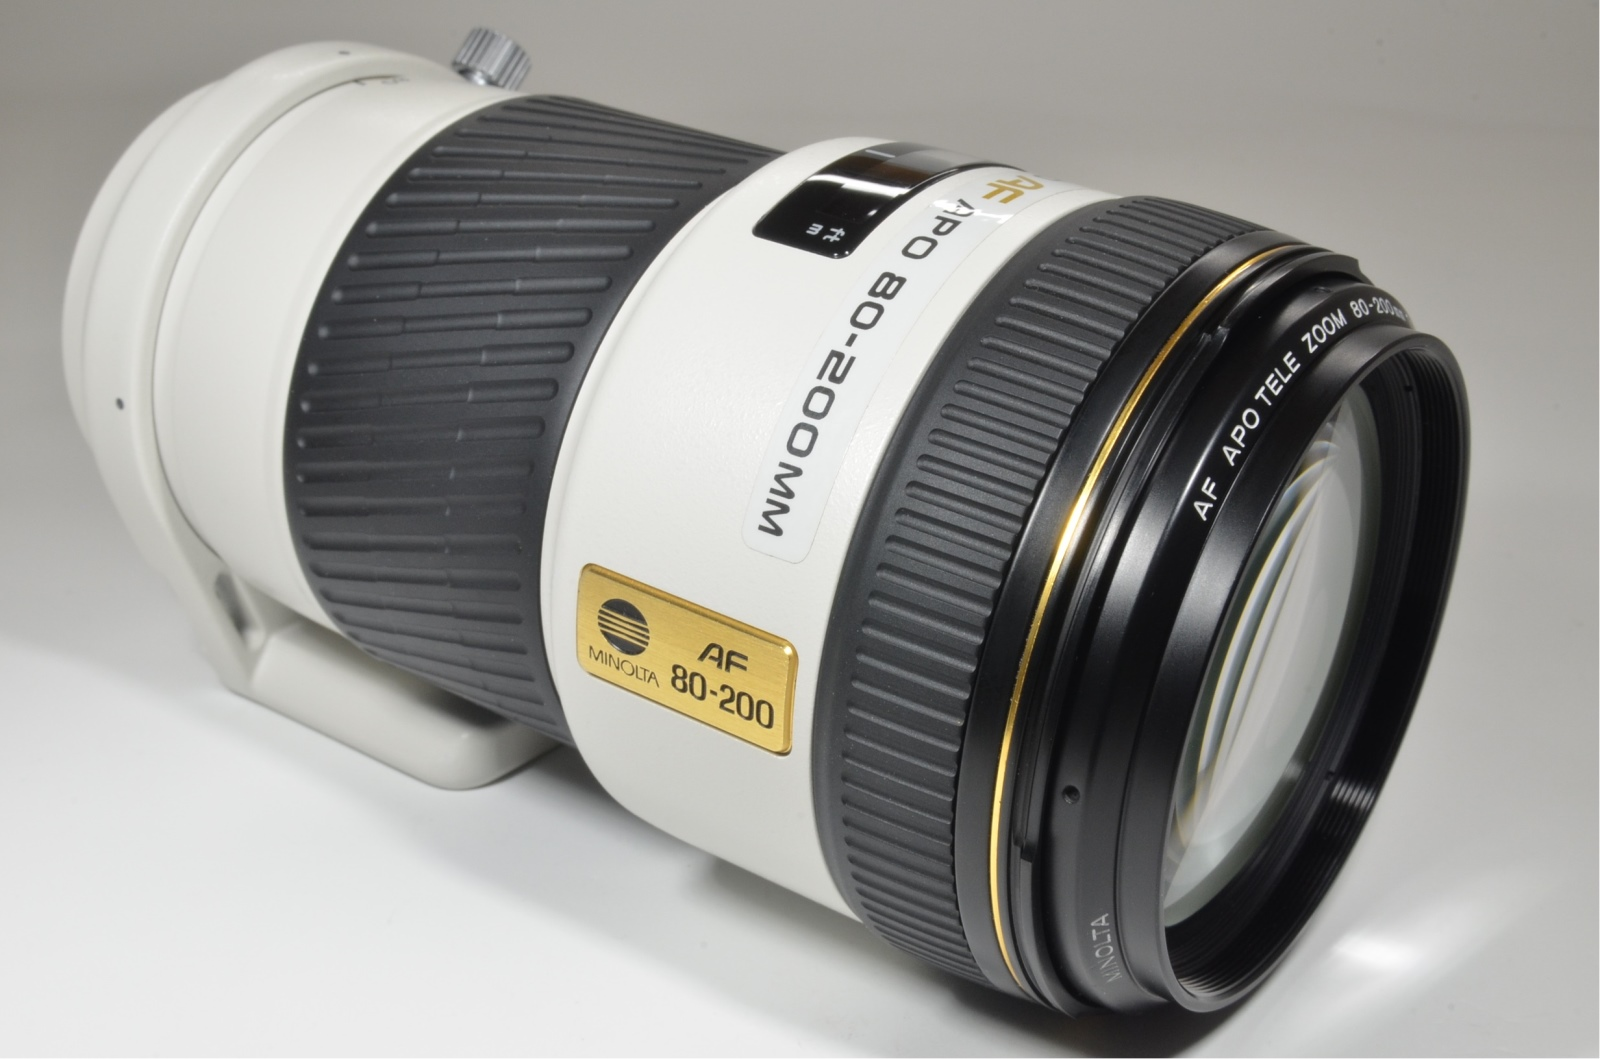 minolta high speed af apo 80-200mm f2.8 g lens sony japan